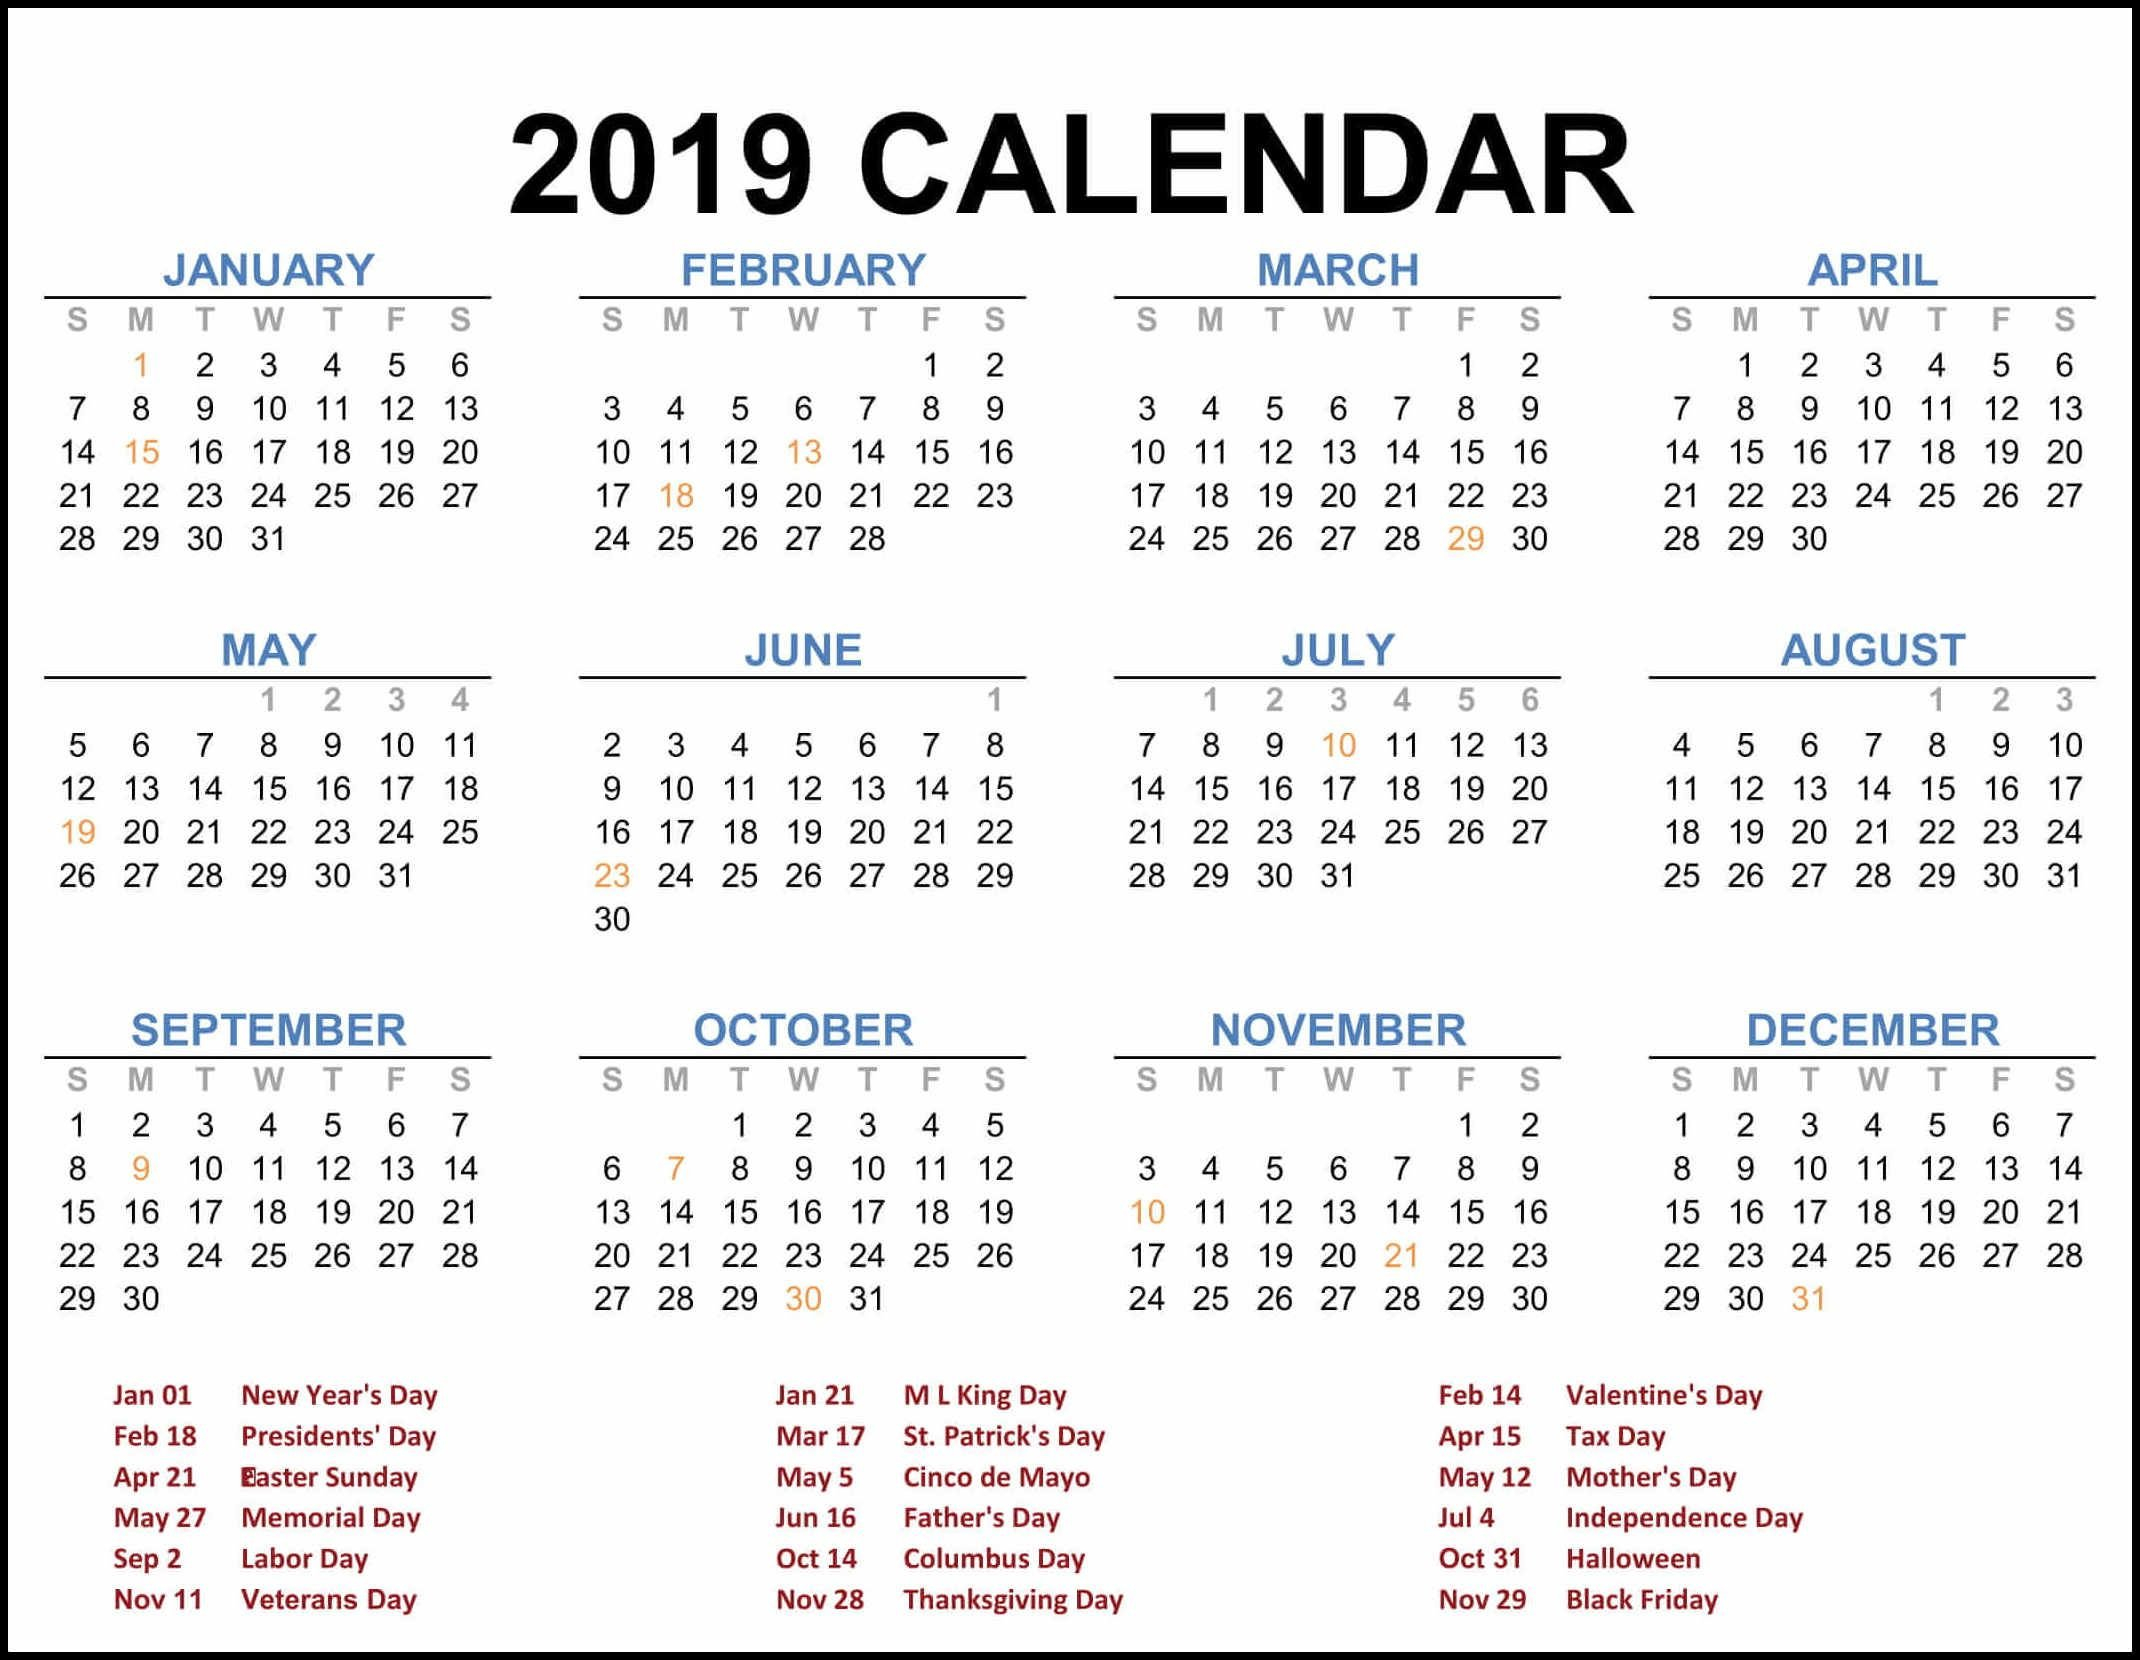 2019 Federal Holiday Calendar | 2019 Calendar Template In One Pages Calendar 2019 Federal Holidays